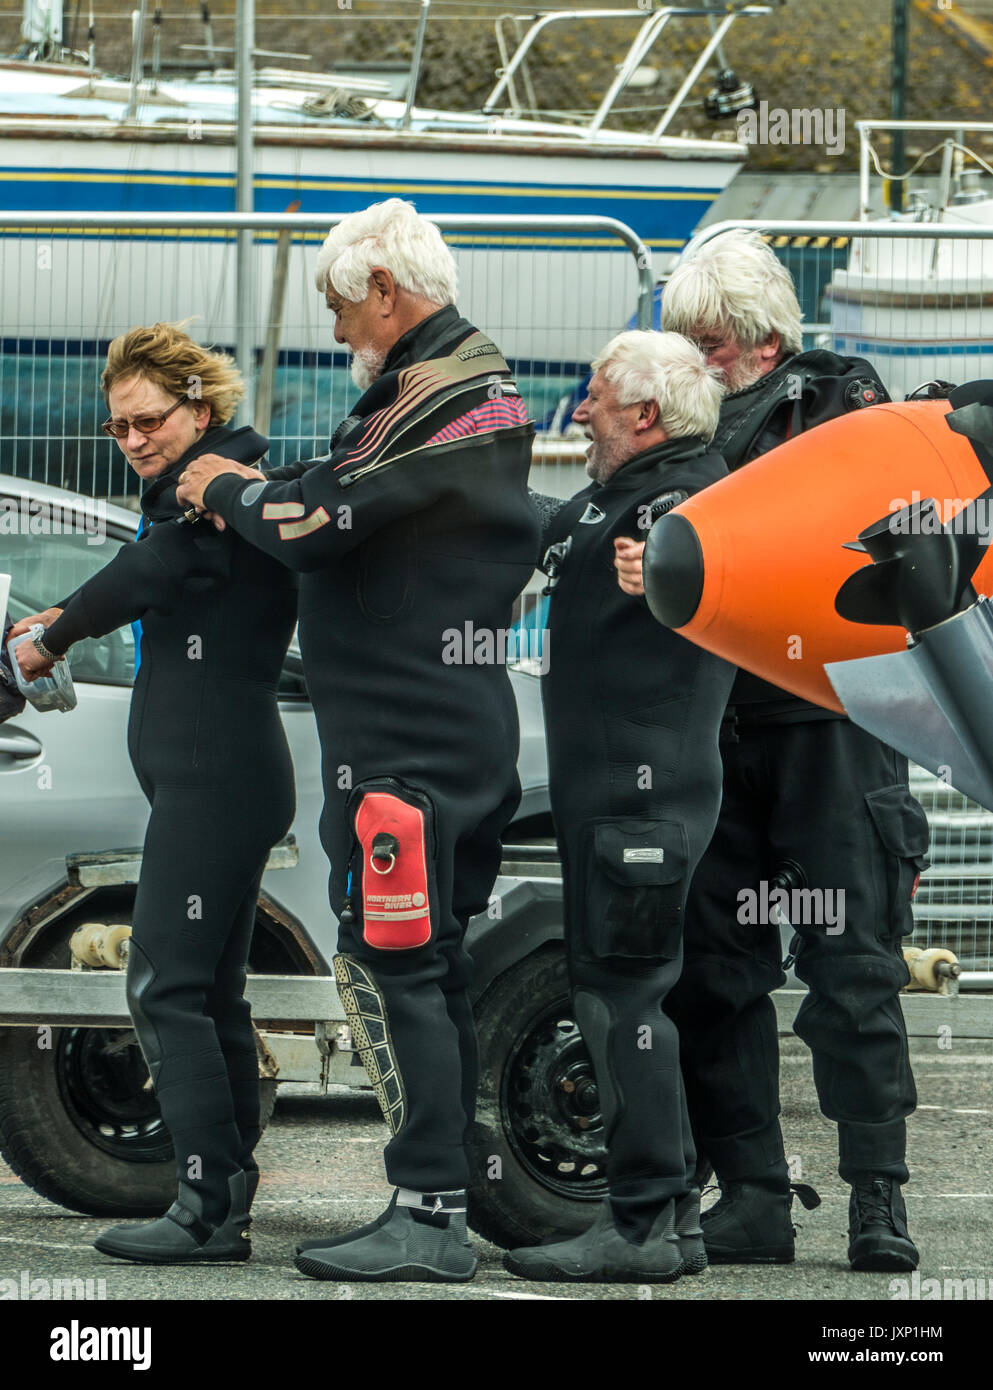 Humorous scene of four elderly friends helping each other with the fitting of their diving suits, in Penzance harbour, Cornwall, England, UK. - Stock Image